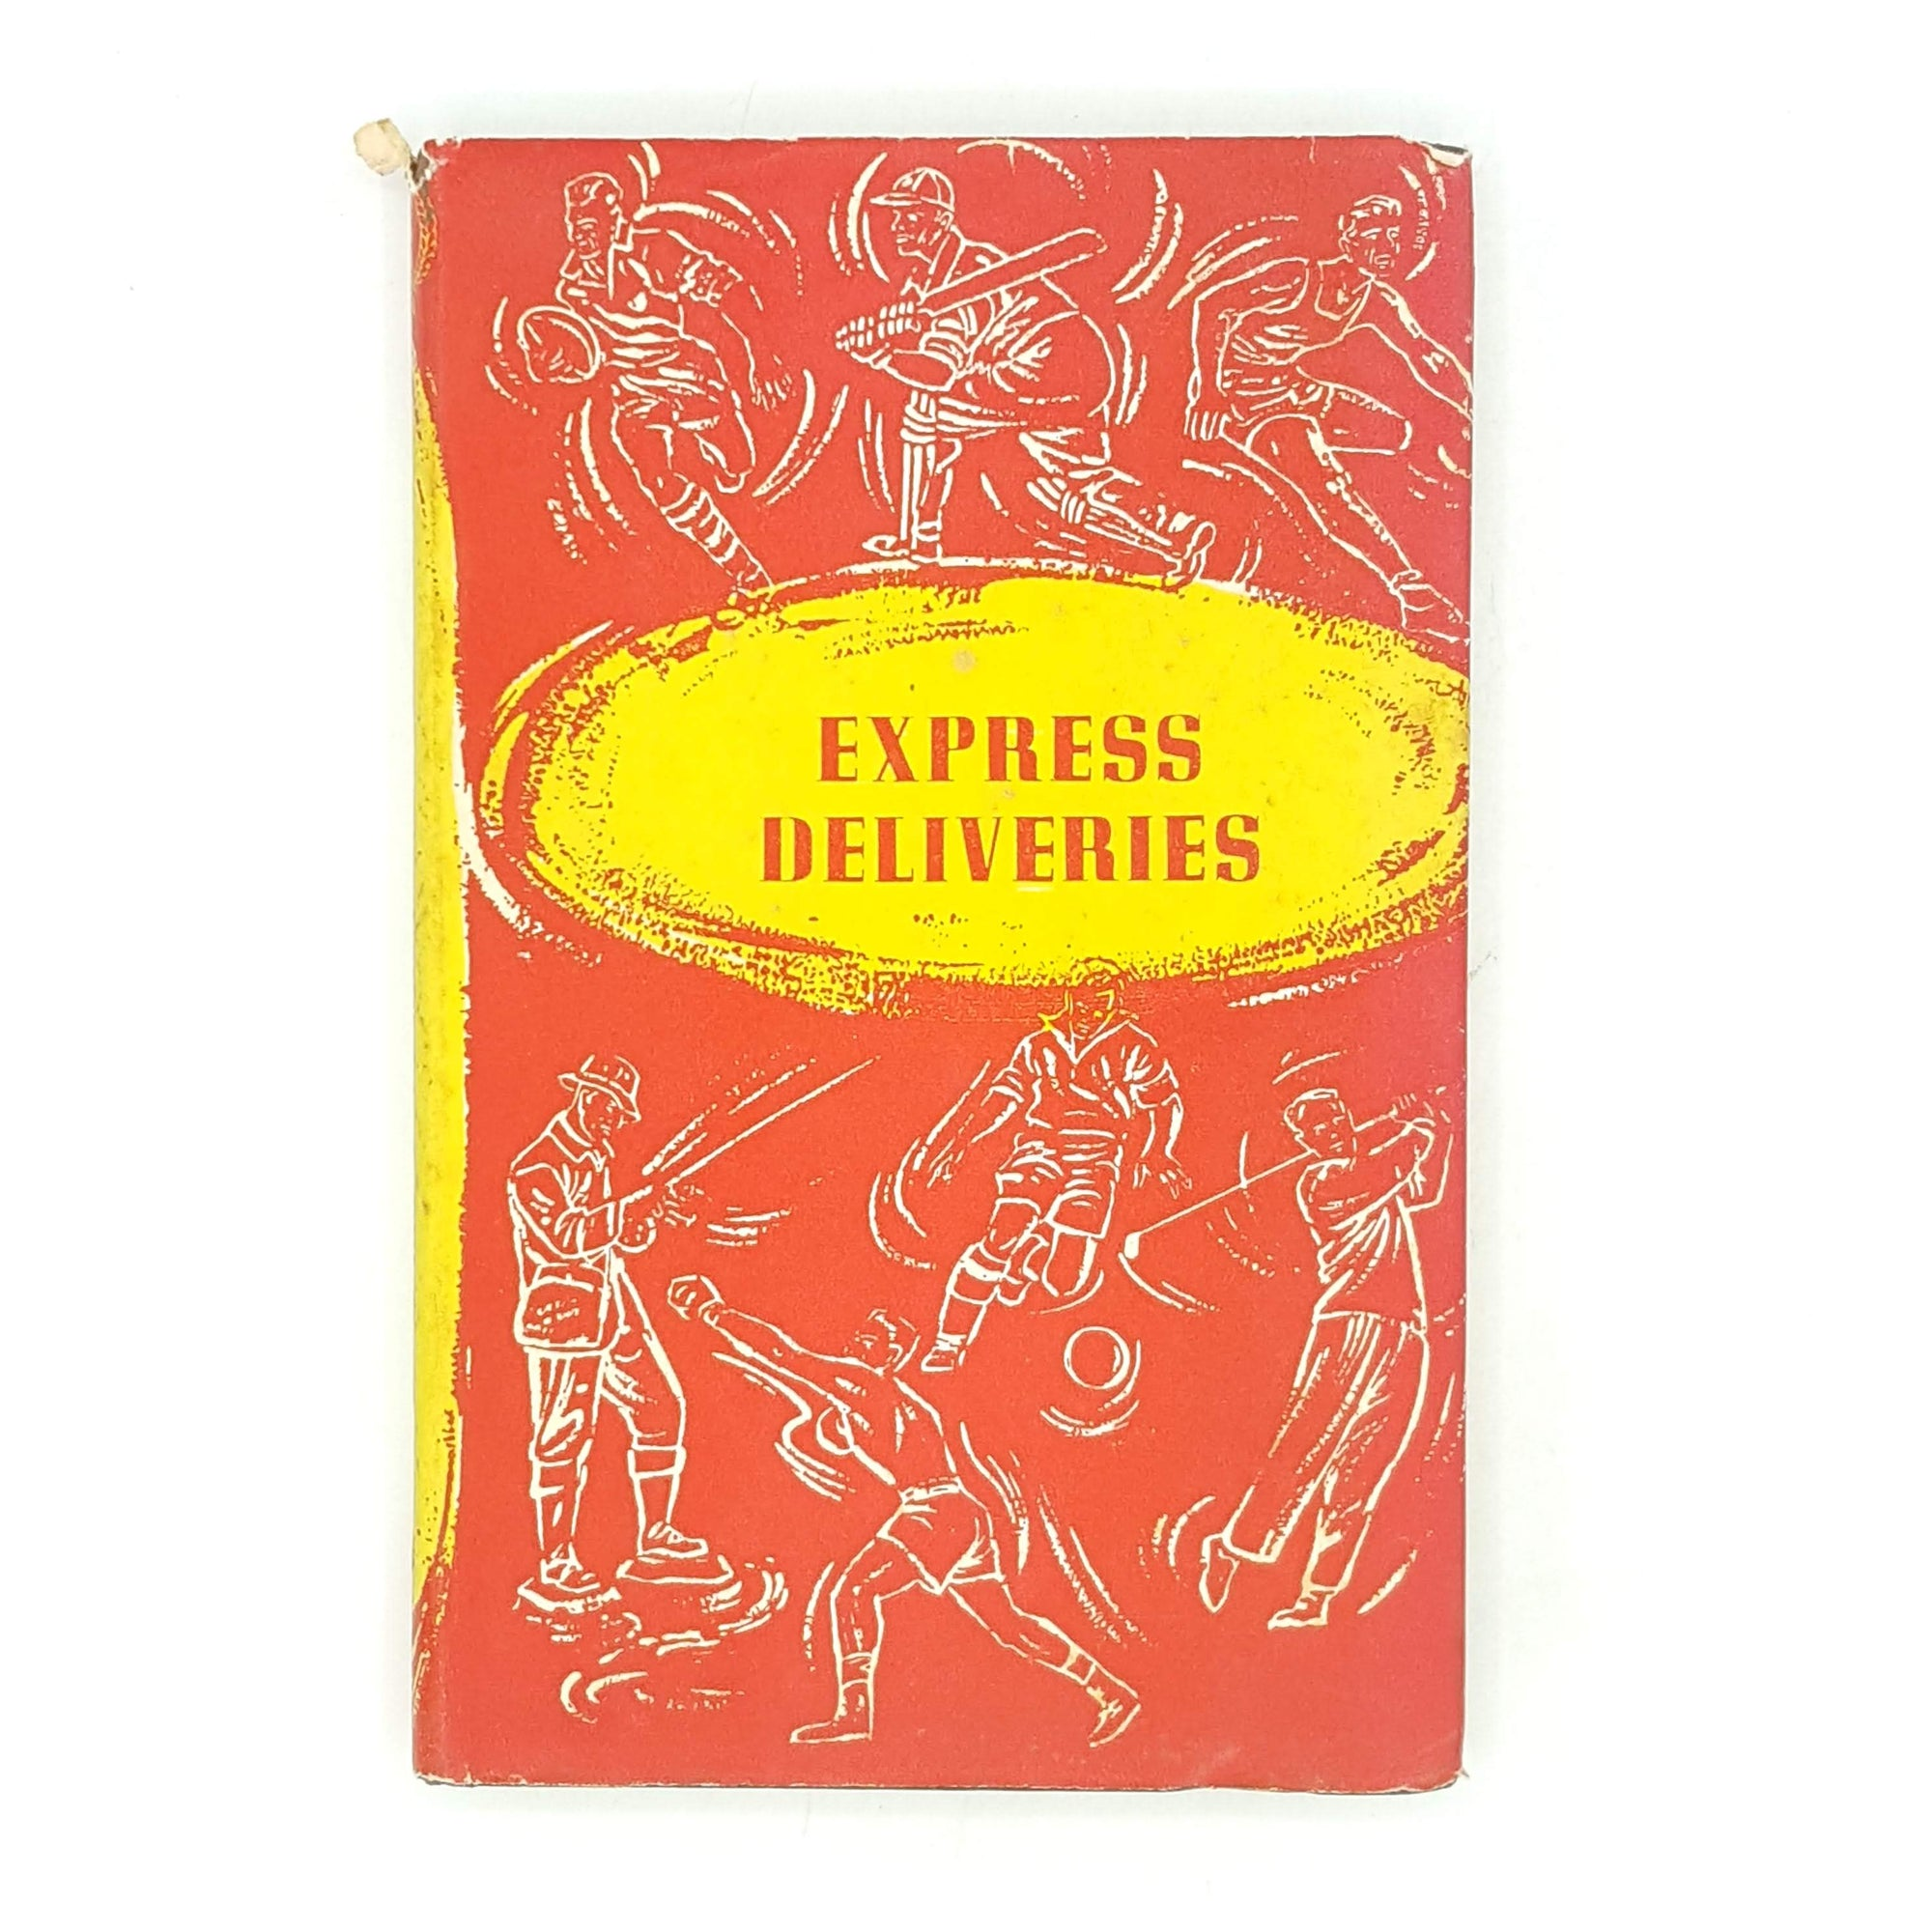 thrift-red-old-bill-bowes-the-sportsman-book-club-decorative-antique-books-express-deliveries-patterned-1958-classic-country-house-library-vintage-